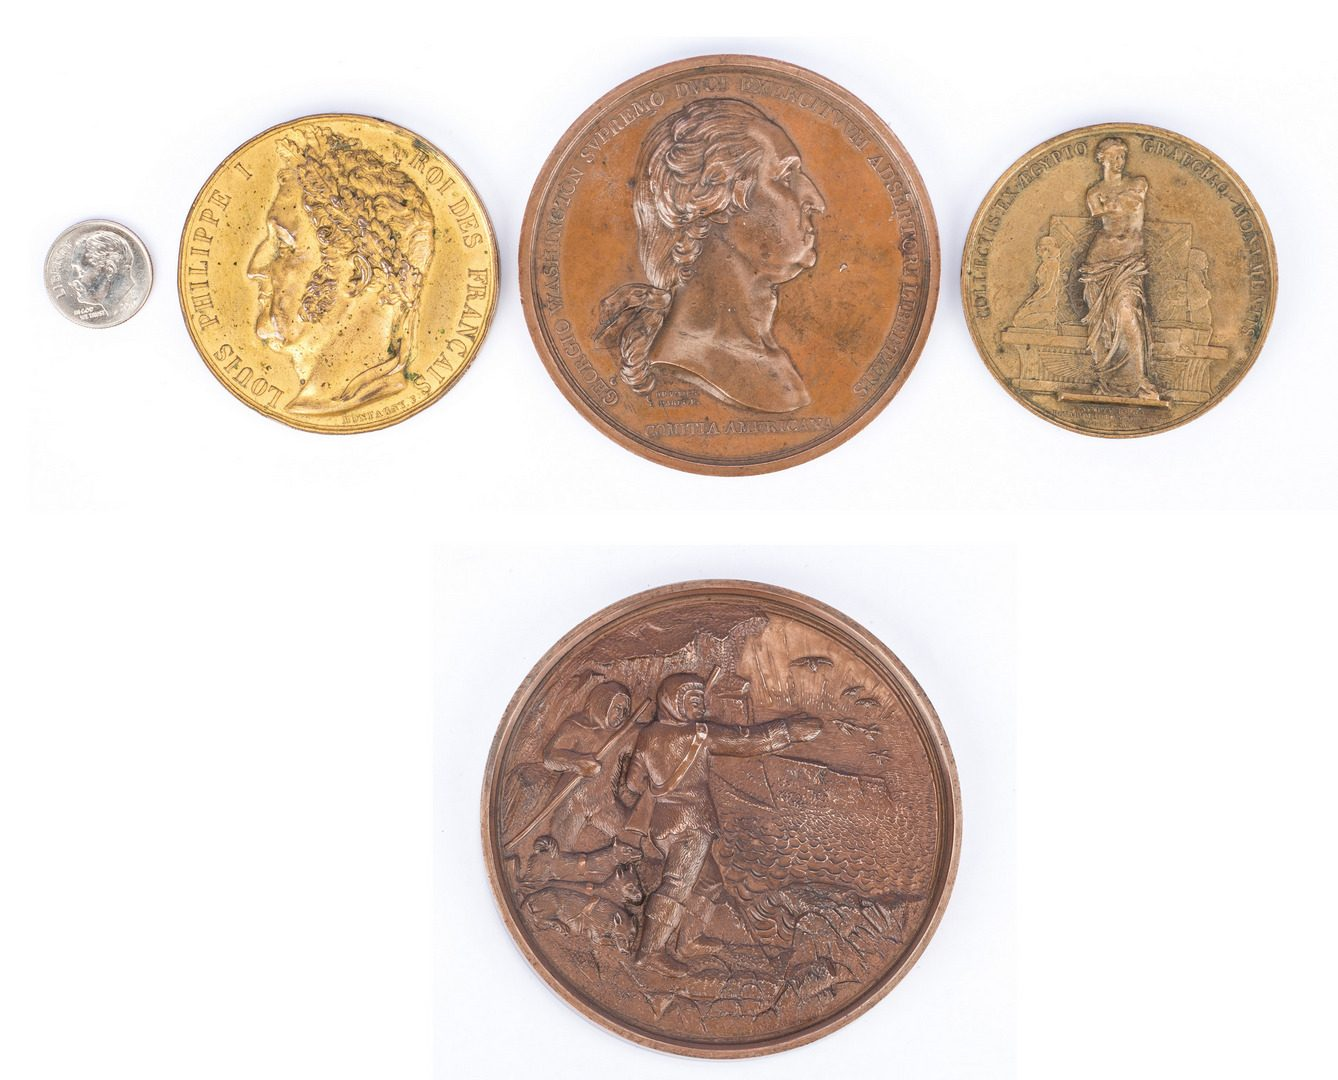 Lot 166: Group of 4 19th Cent. French/American Bronze Medals